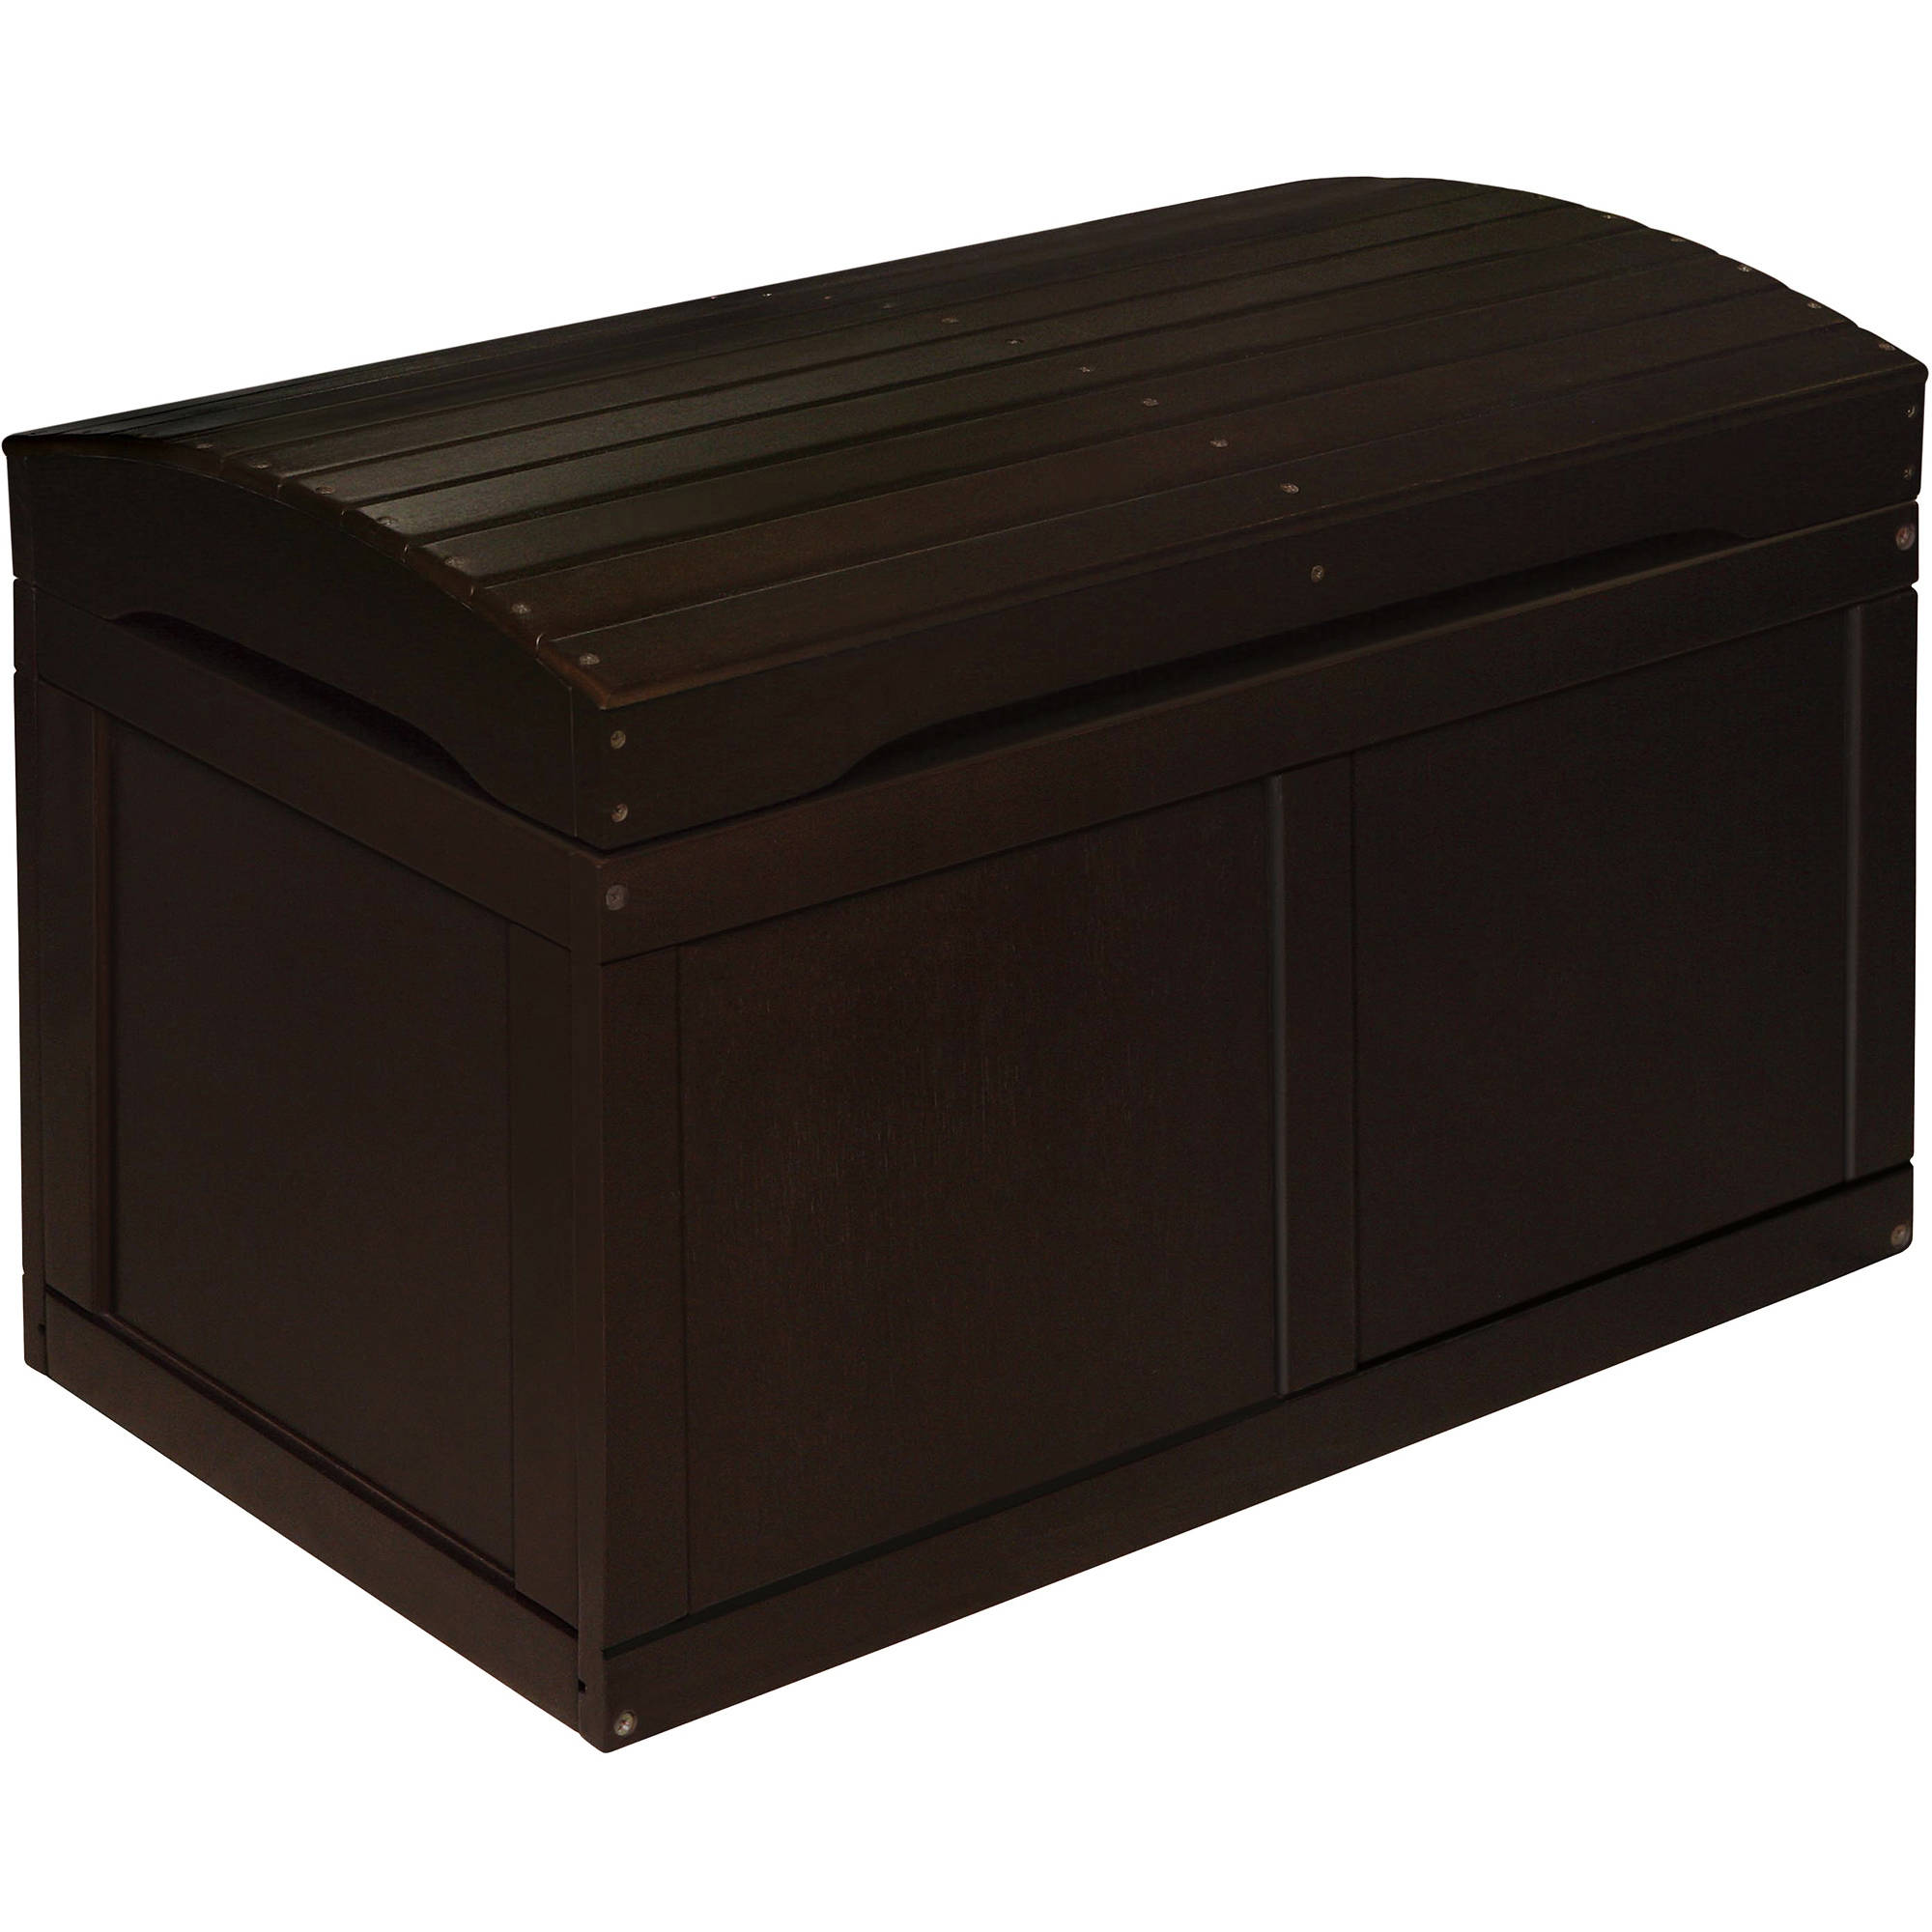 Badger Barrel Top Wood Toy Chest, Multiple Colors by Badger Basket